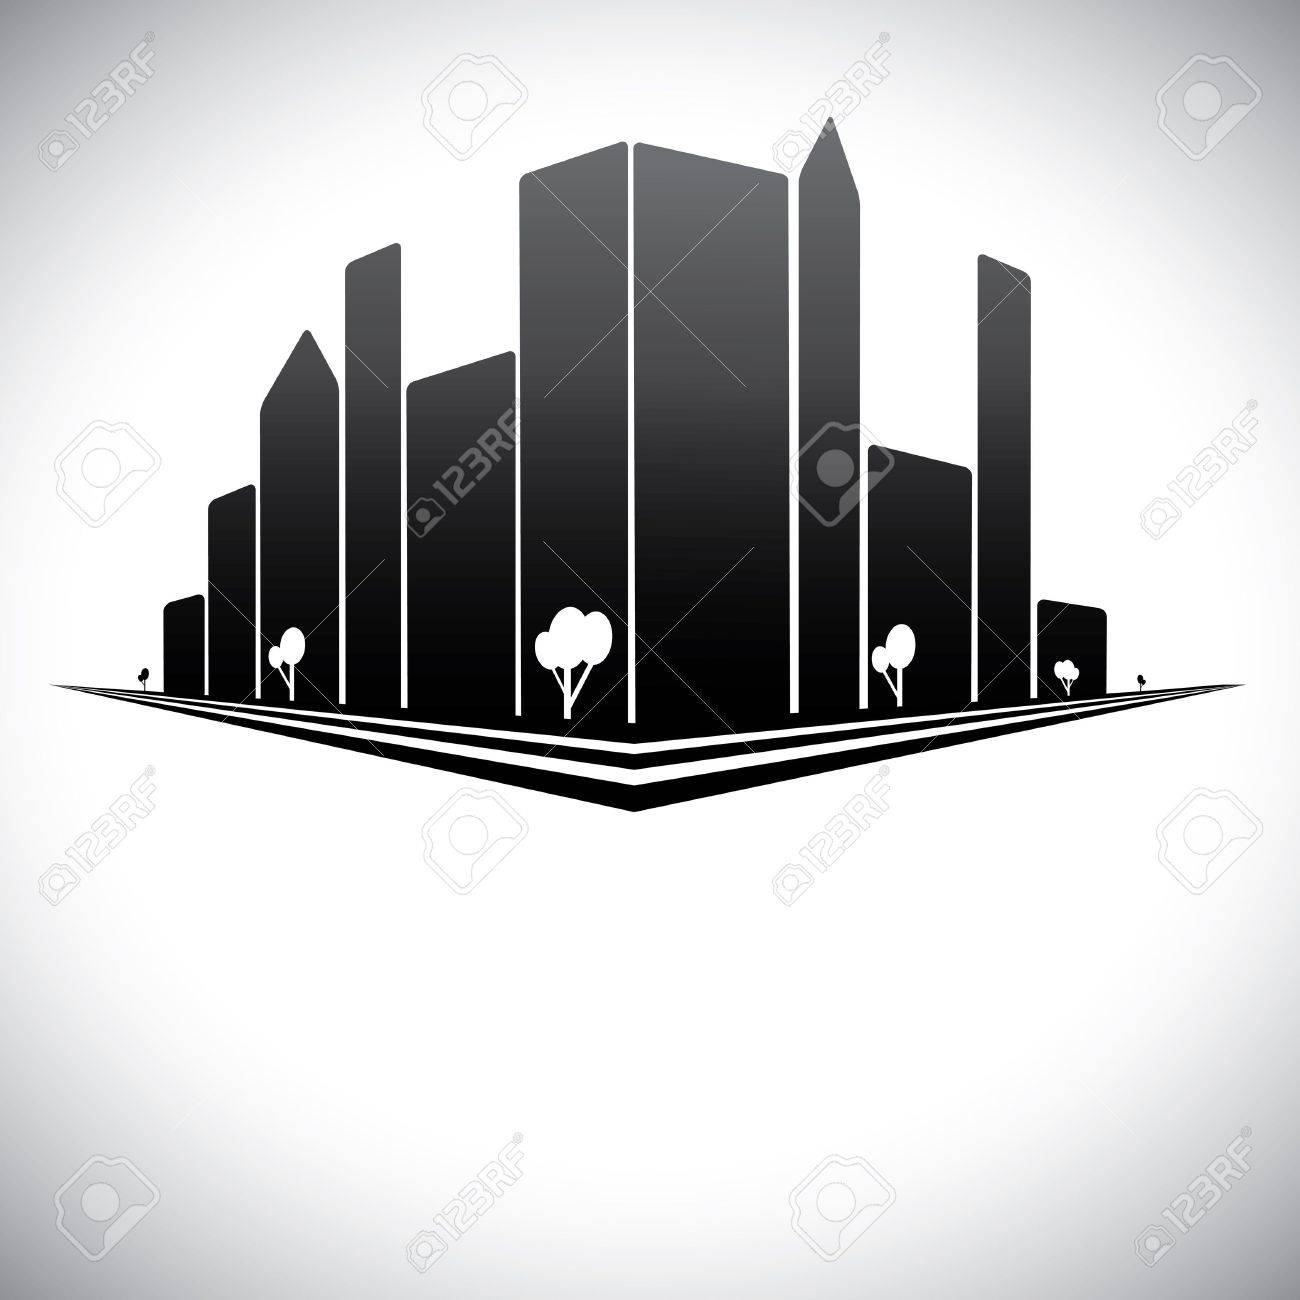 Downtown buildings in b &amp, w of modern city skyline with skyscrapers, trees,  tall towers and streets in shades of black, white and grey Stock Vector - 17071538